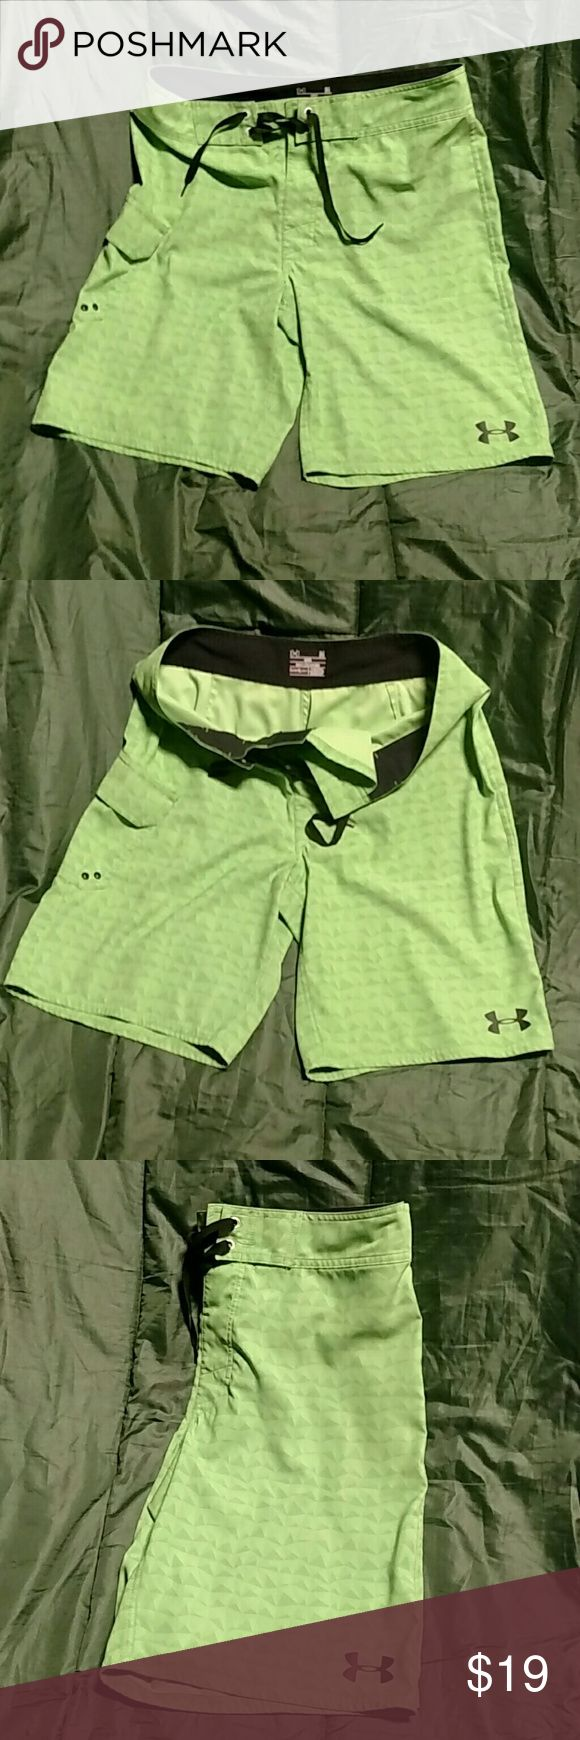 Men's swimsuit Men's pistachio colored swimsuit with distinctive design ,right hand side pocket with a Velcro flap hits at the knee,size 34 fits like a size 32 ,ties in the front.Thank you🌴🌴🌴 Under Armour Swim Swim Trunks